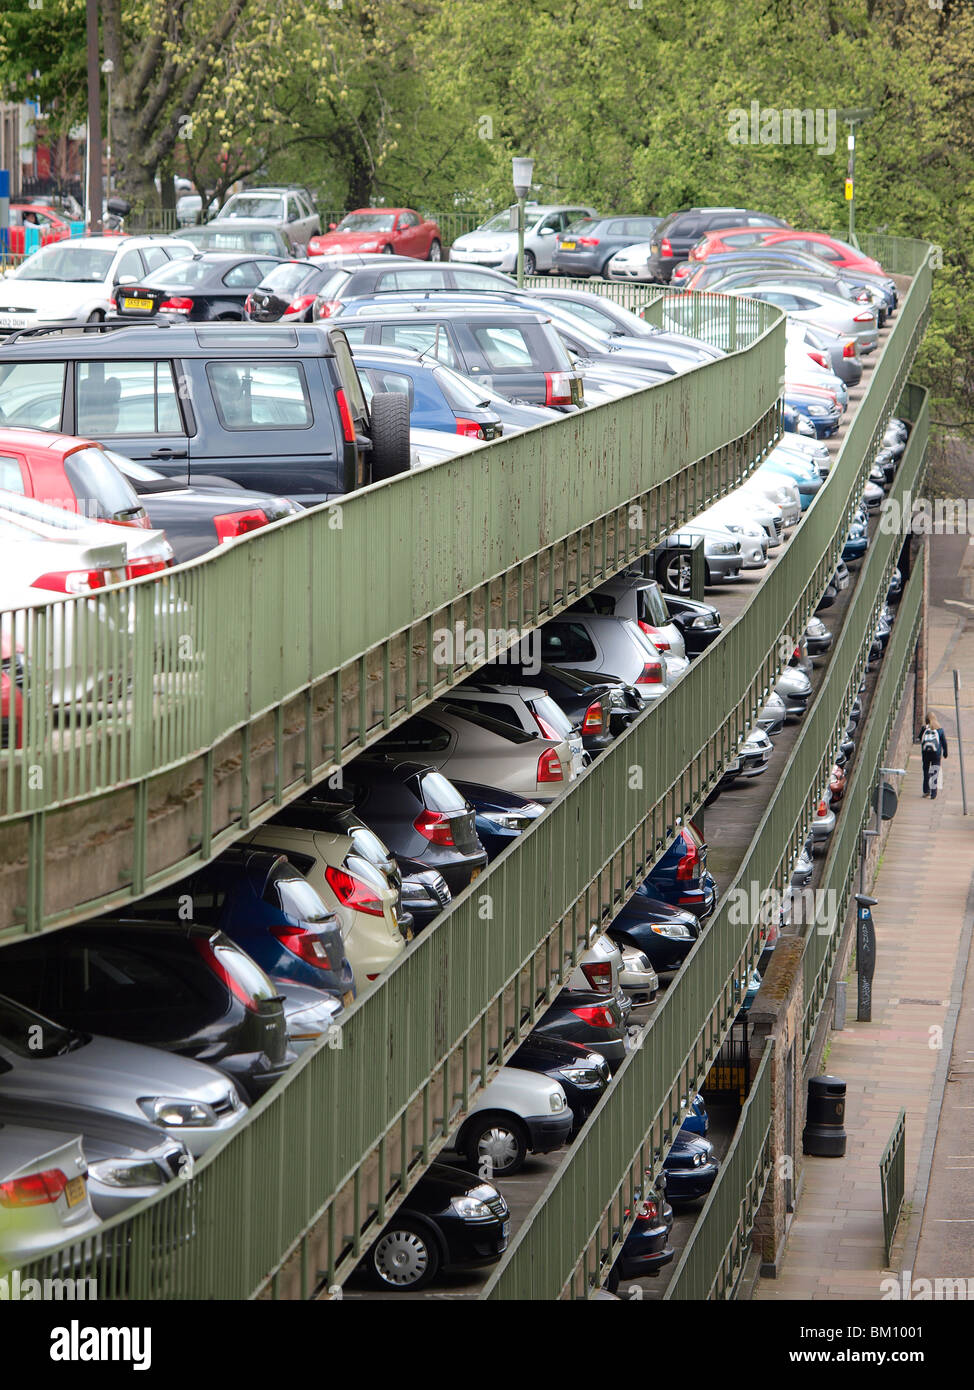 Cars parked in a parking house in Edinburgh, Scotland - Stock Image